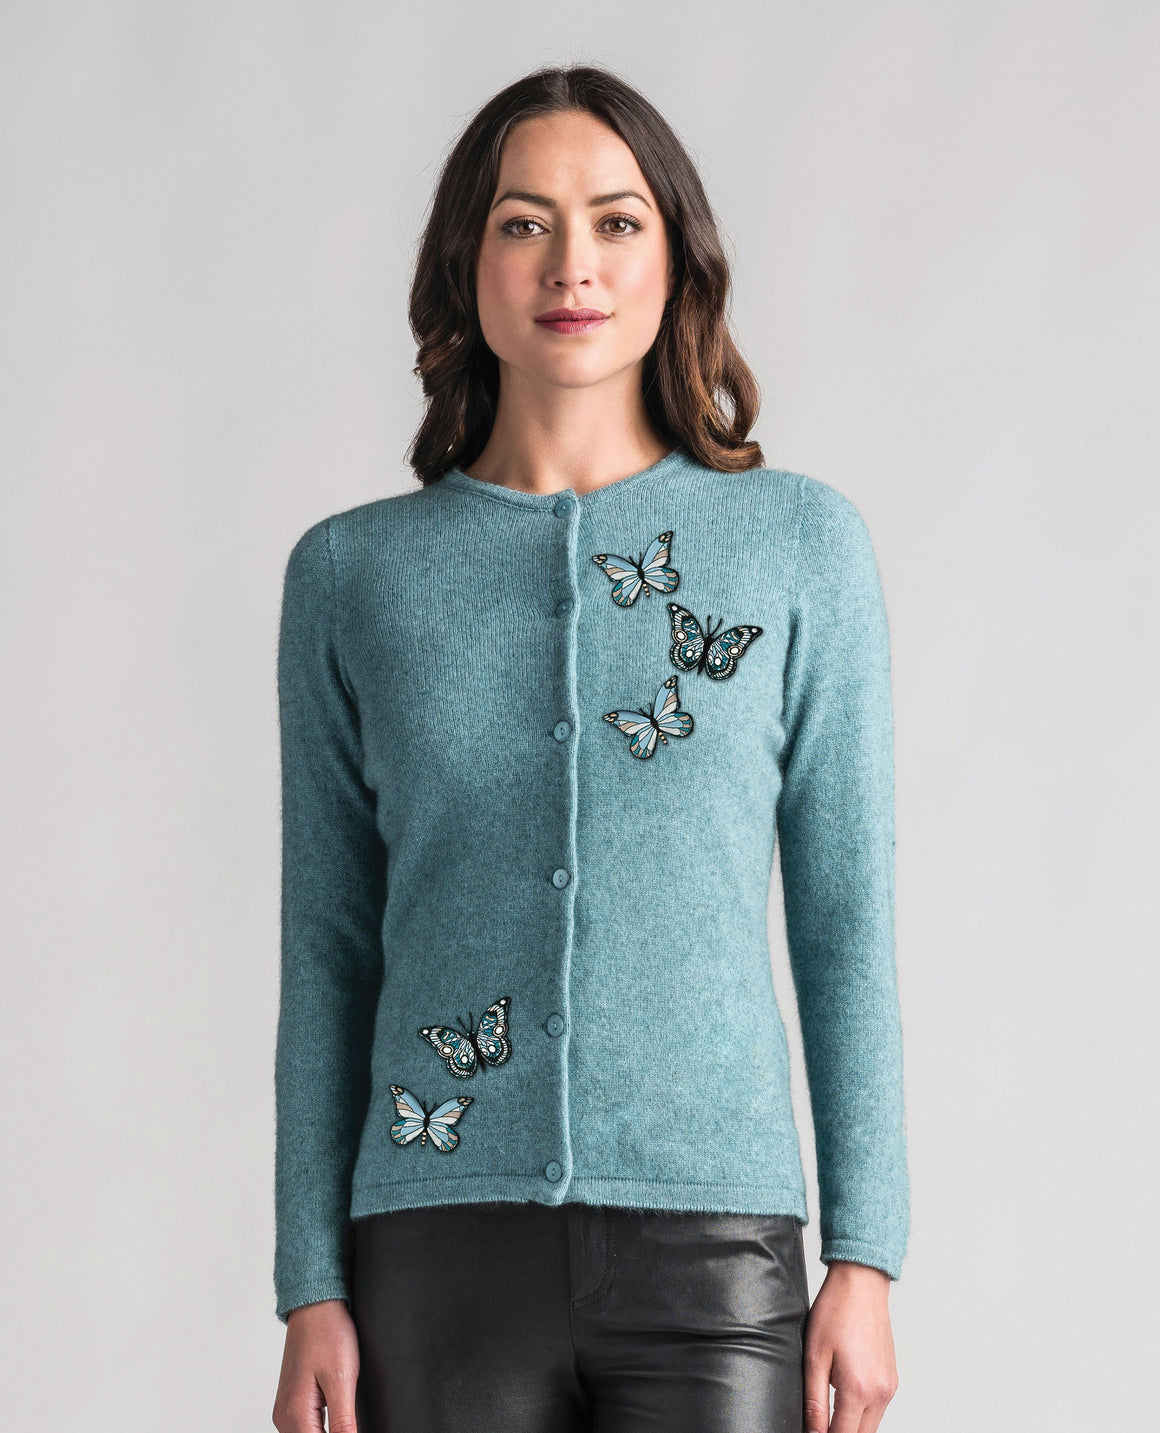 Merinomink-Womens Butterfly Cardi-shop online at www.thewoolpress.com